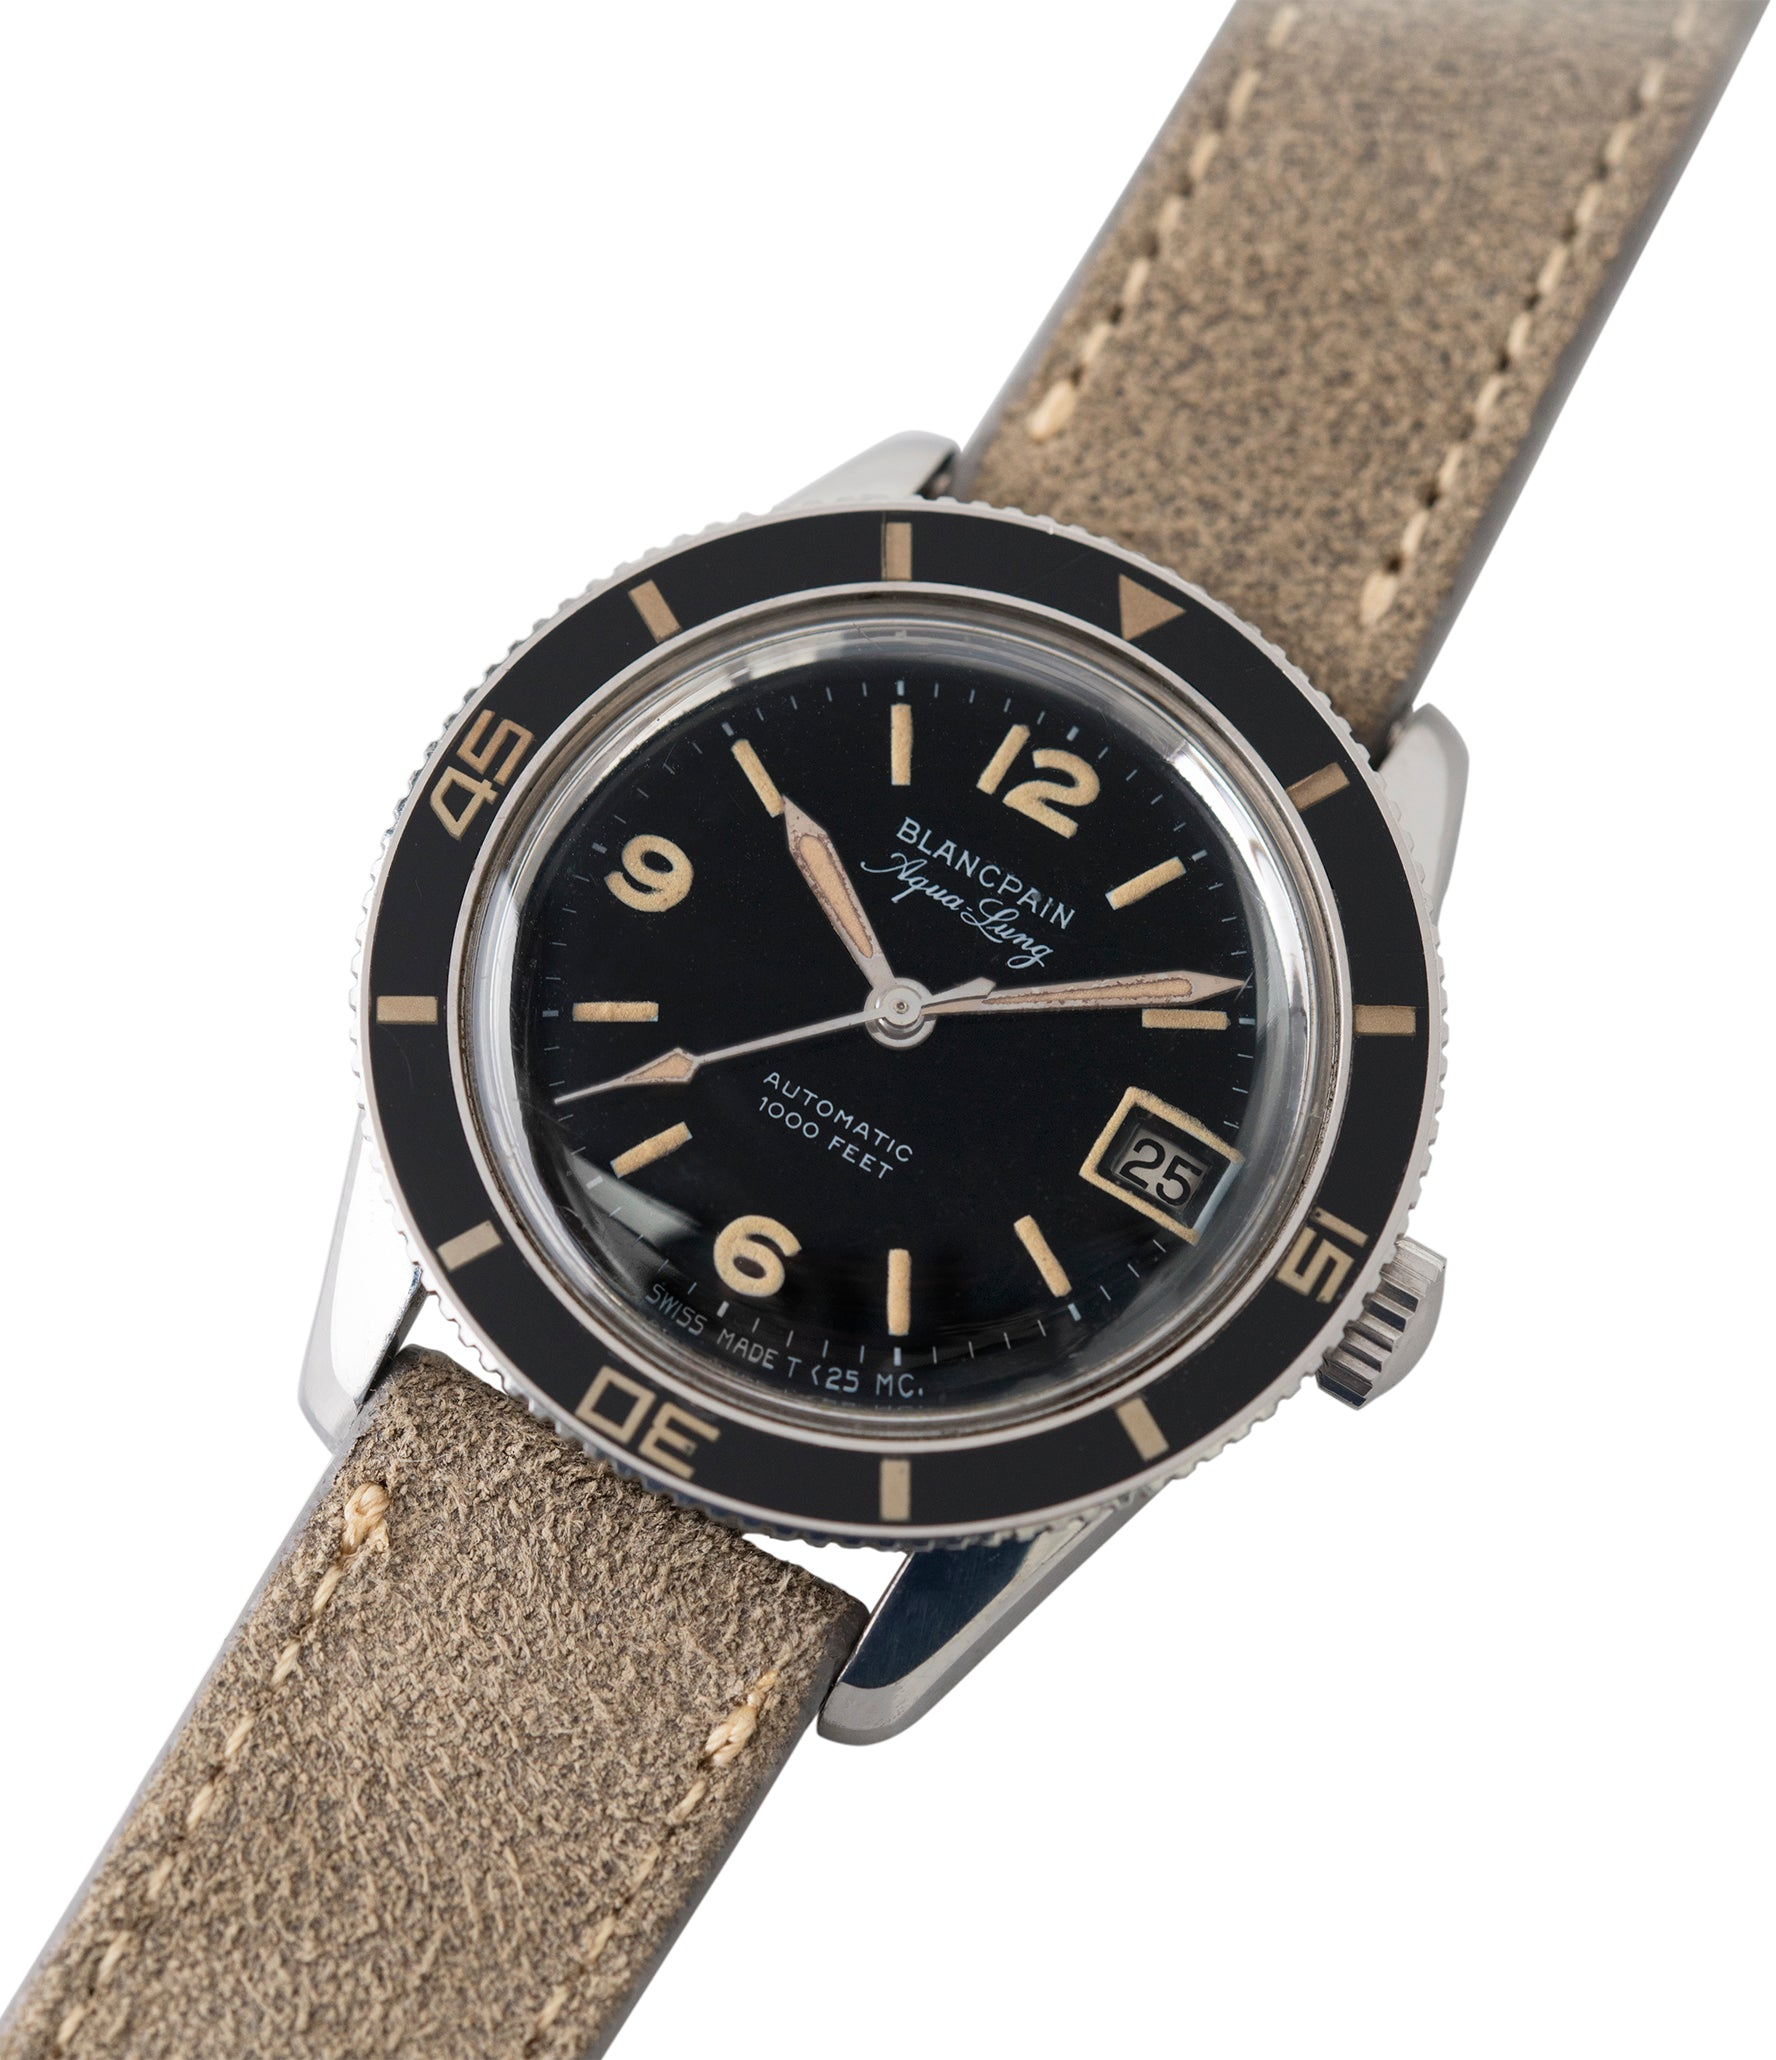 vintage Blancpain Aqua Lung Gloss Dial Bakelite bezel Cal. AS 1700/01 sport watch black dial for sale online at A Collected Man London UK specialist rare, vintage watches